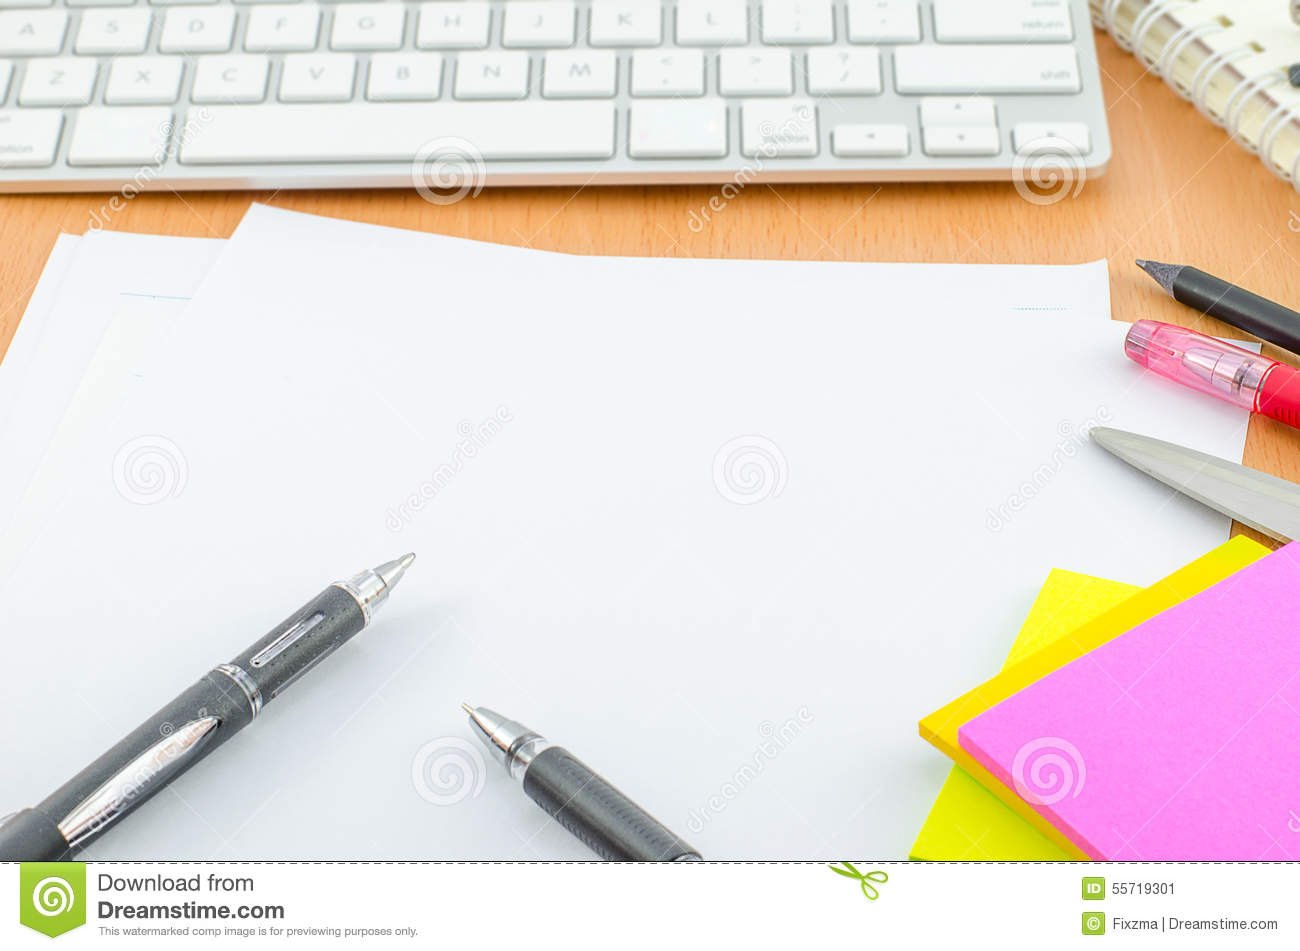 Swell Blank Paper With Pen And Color Note Paper Stock Image Download Free Architecture Designs Terchretrmadebymaigaardcom